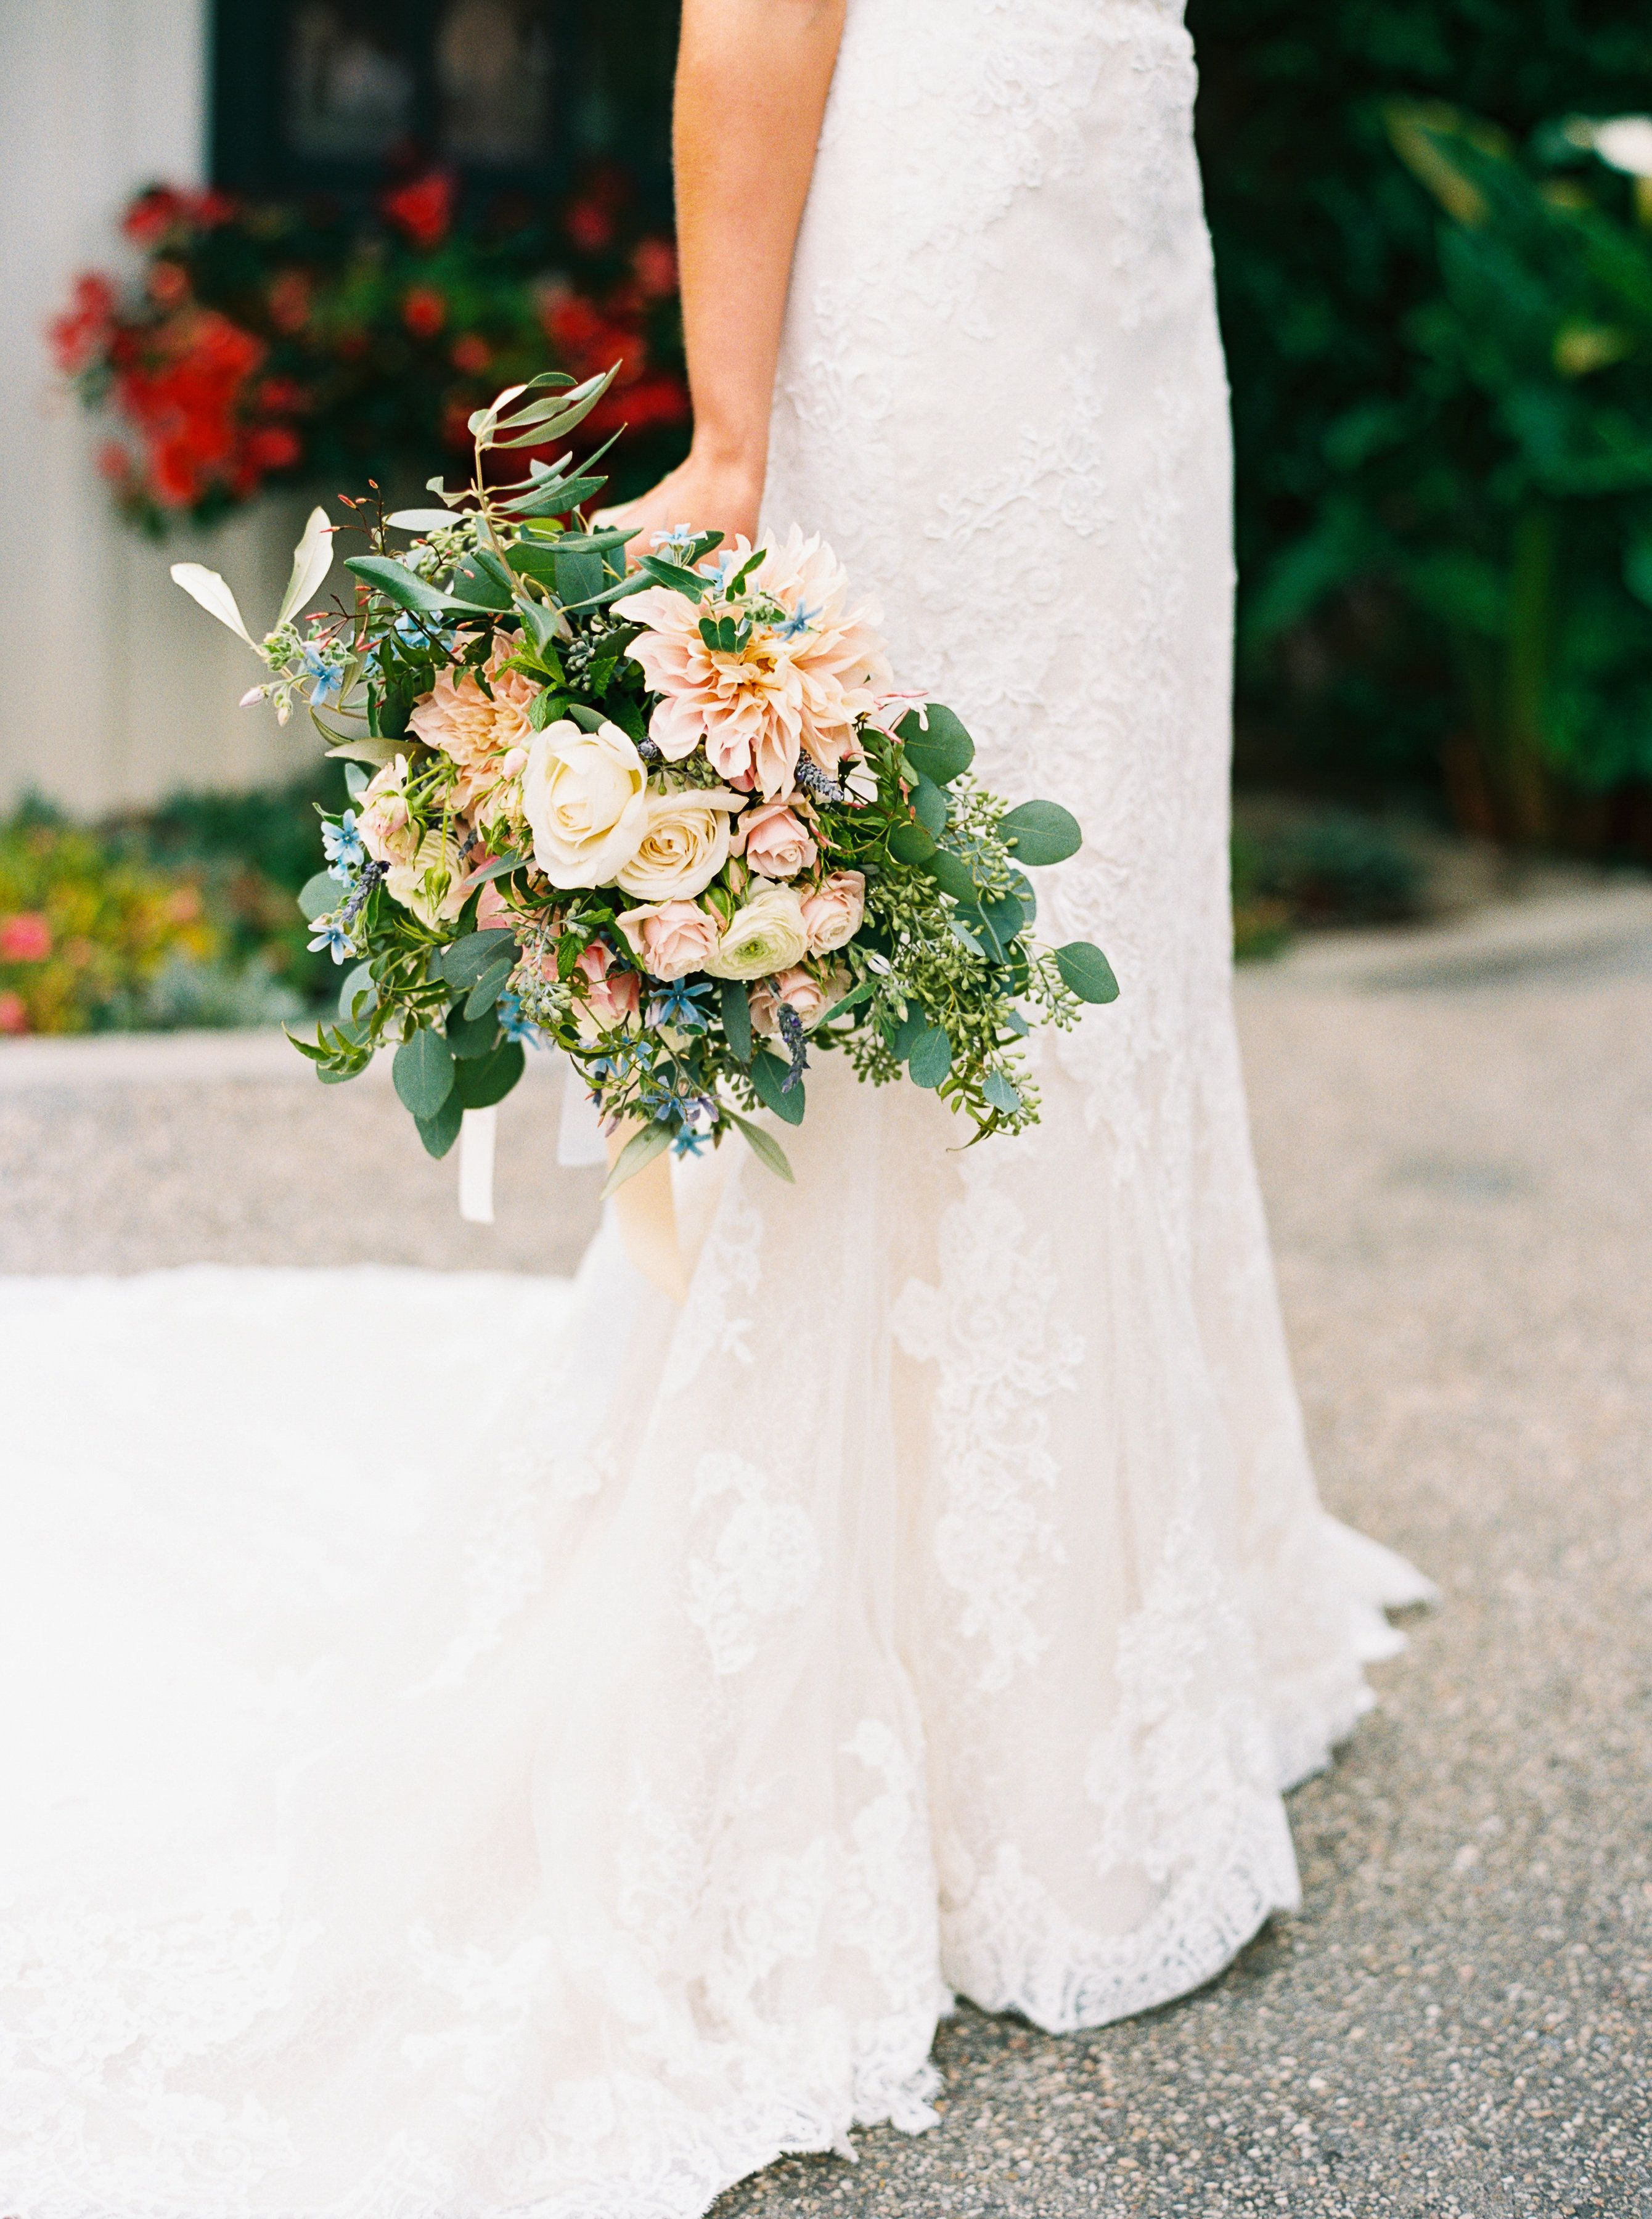 Bohemian Bridal Bouquet With Roses Peonies Spray Roses Lavender